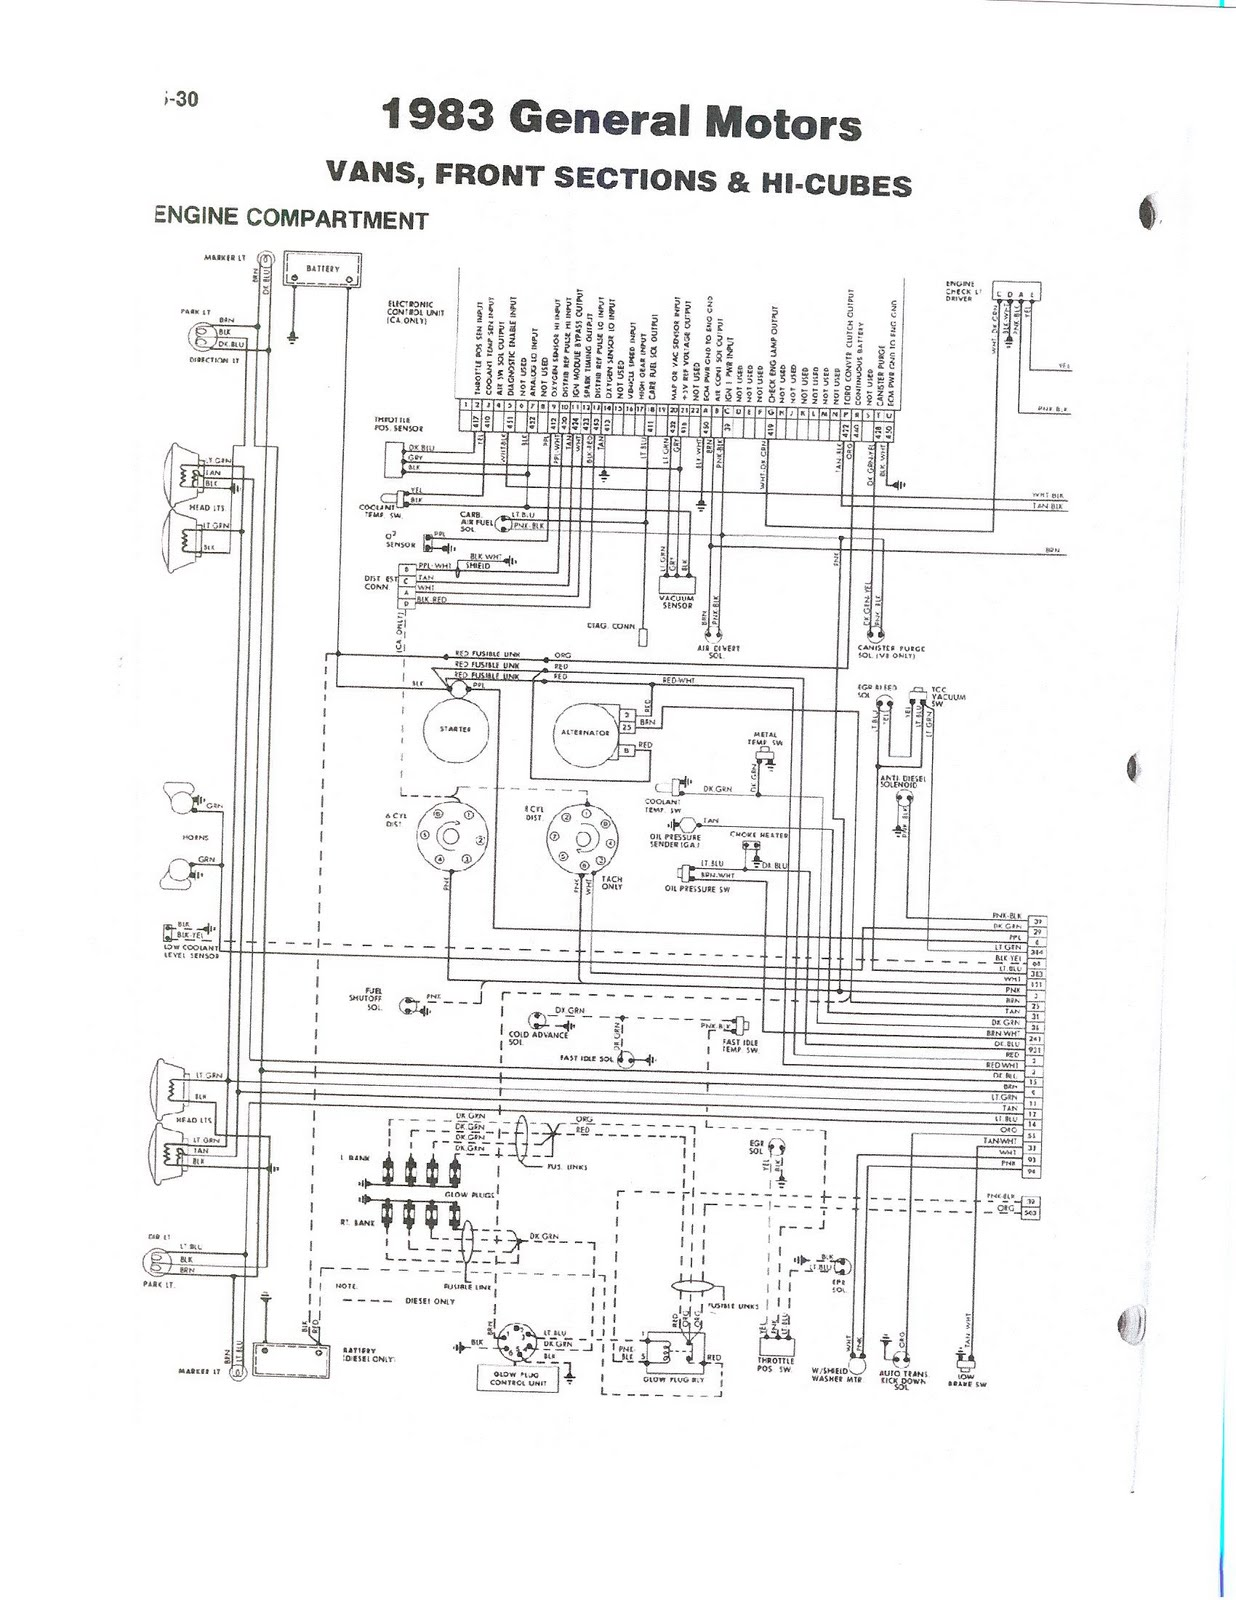 fleetwood rv wiring diagram 1983 chevy